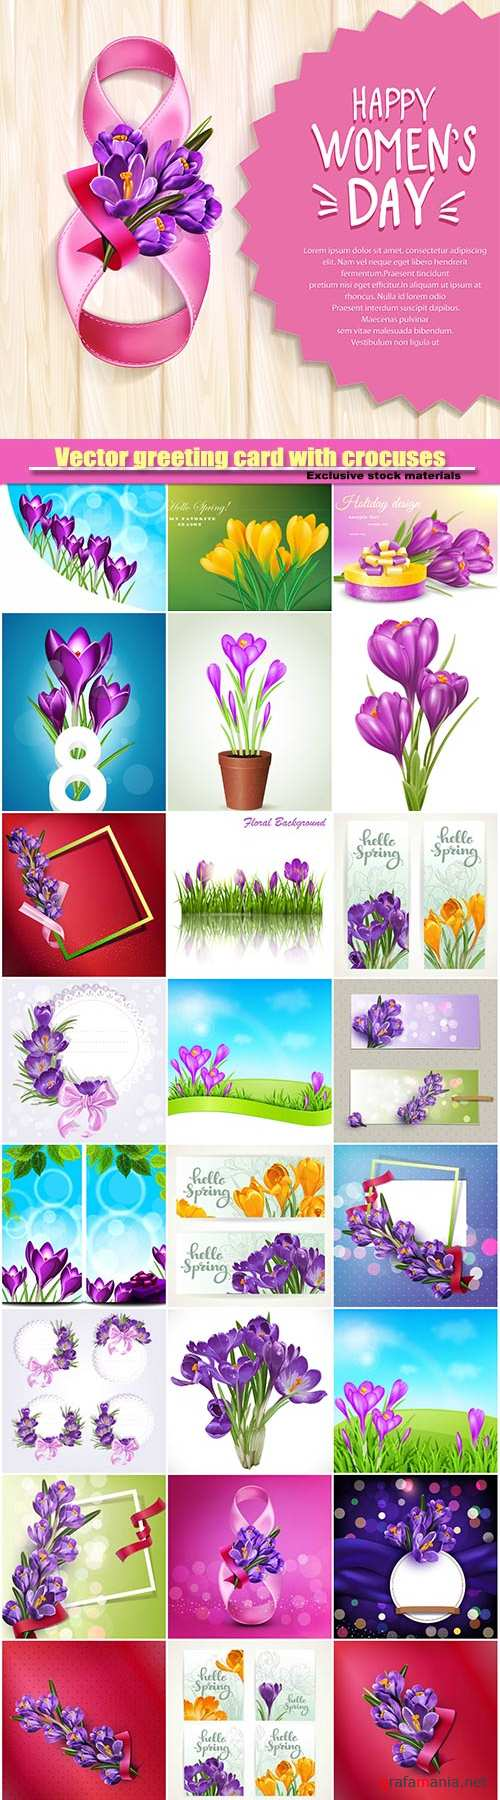 Vector greeting card with crocuses, frame with spring flowers